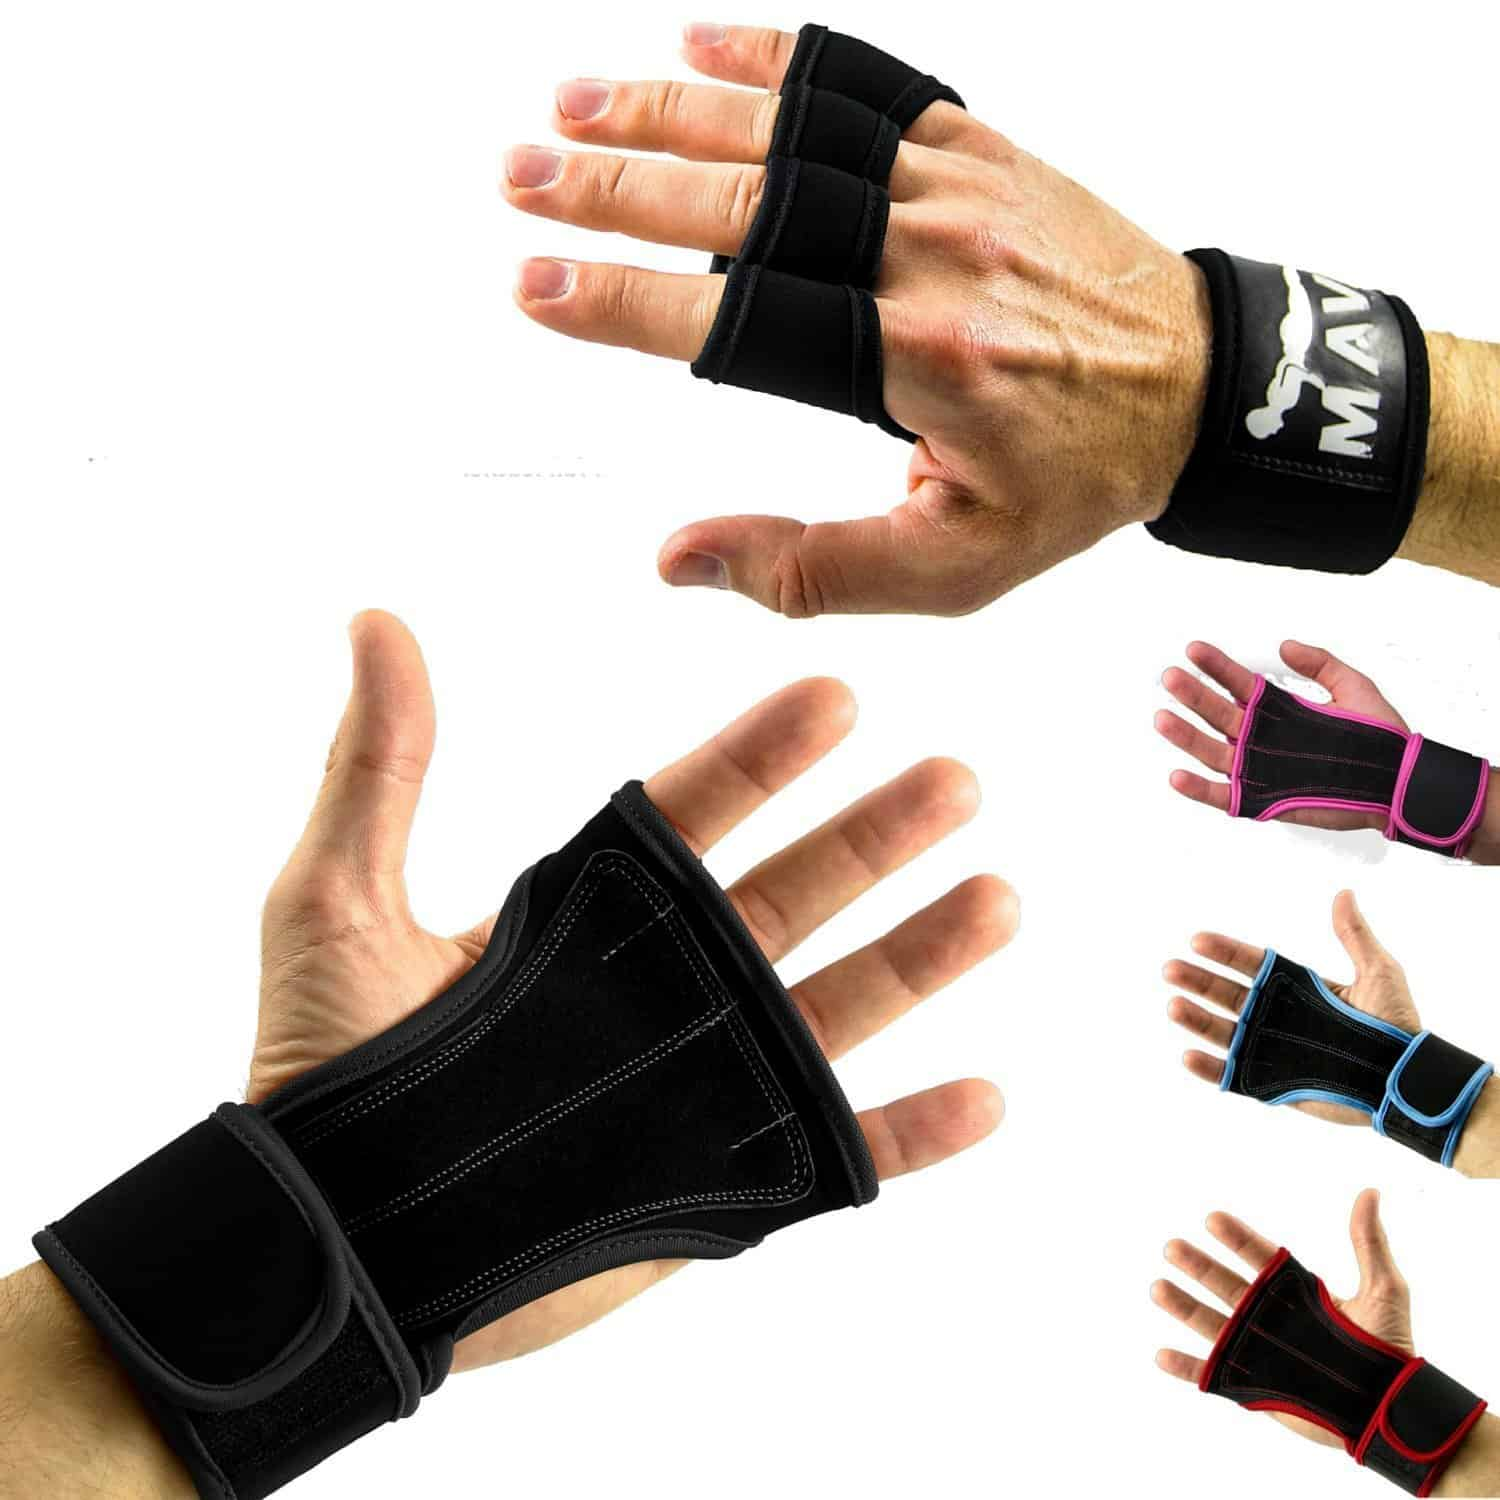 Mava Fitness Gloves: The 5 Best Crossfit Gloves & Pull-Up Hand Grips (Own The WOD